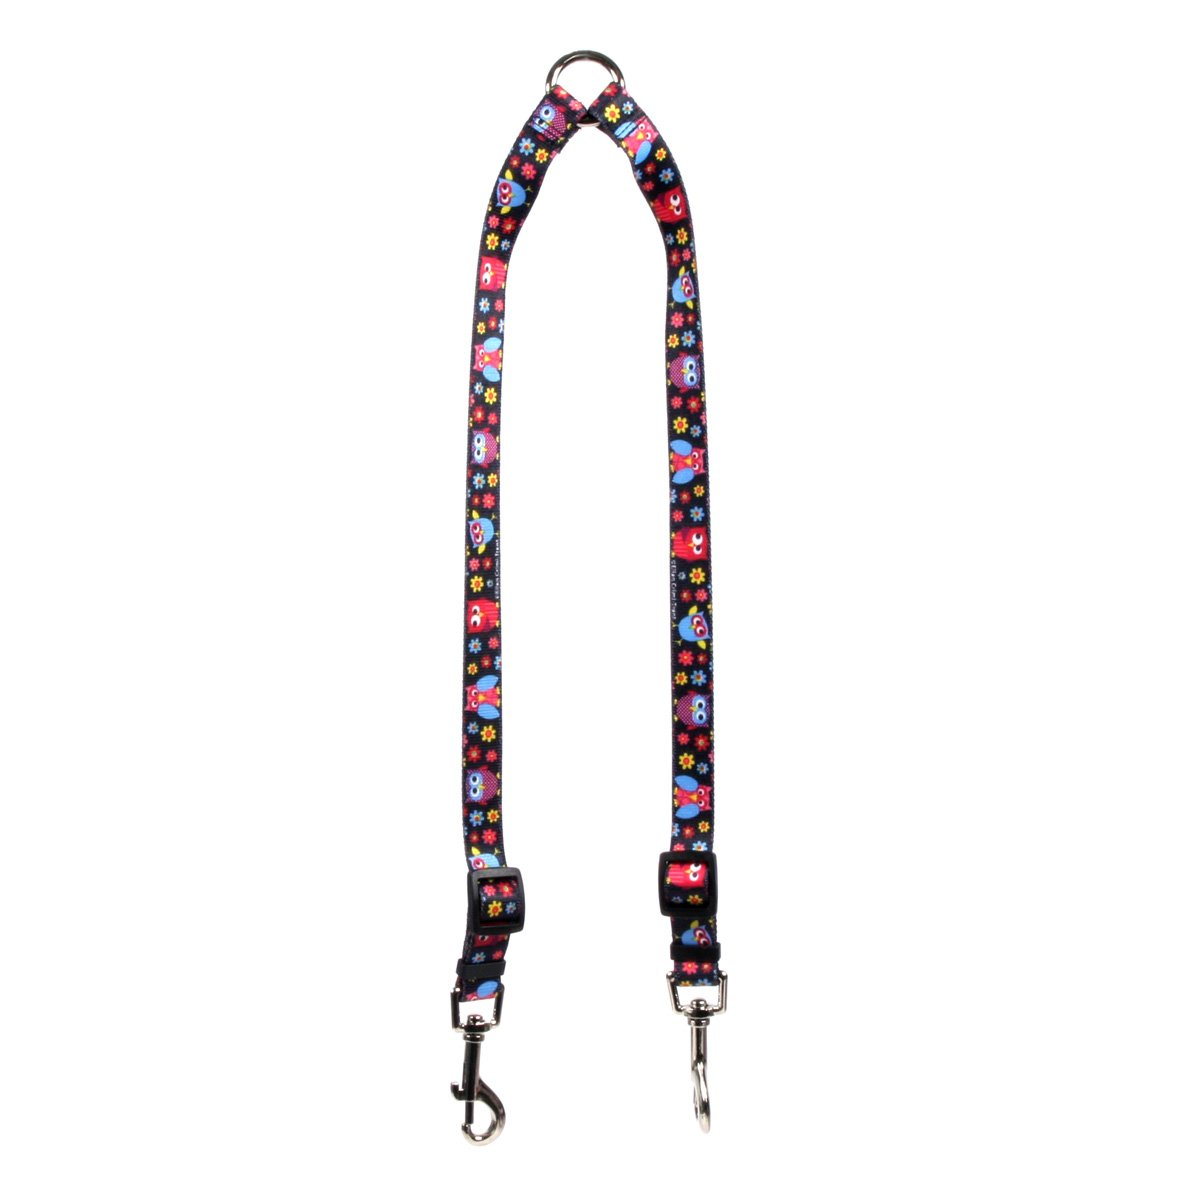 Medium Yellow Dog Design Bright Owls Coupler Dog Leash 3 4  Wide And 12 To 20  Long, Medium